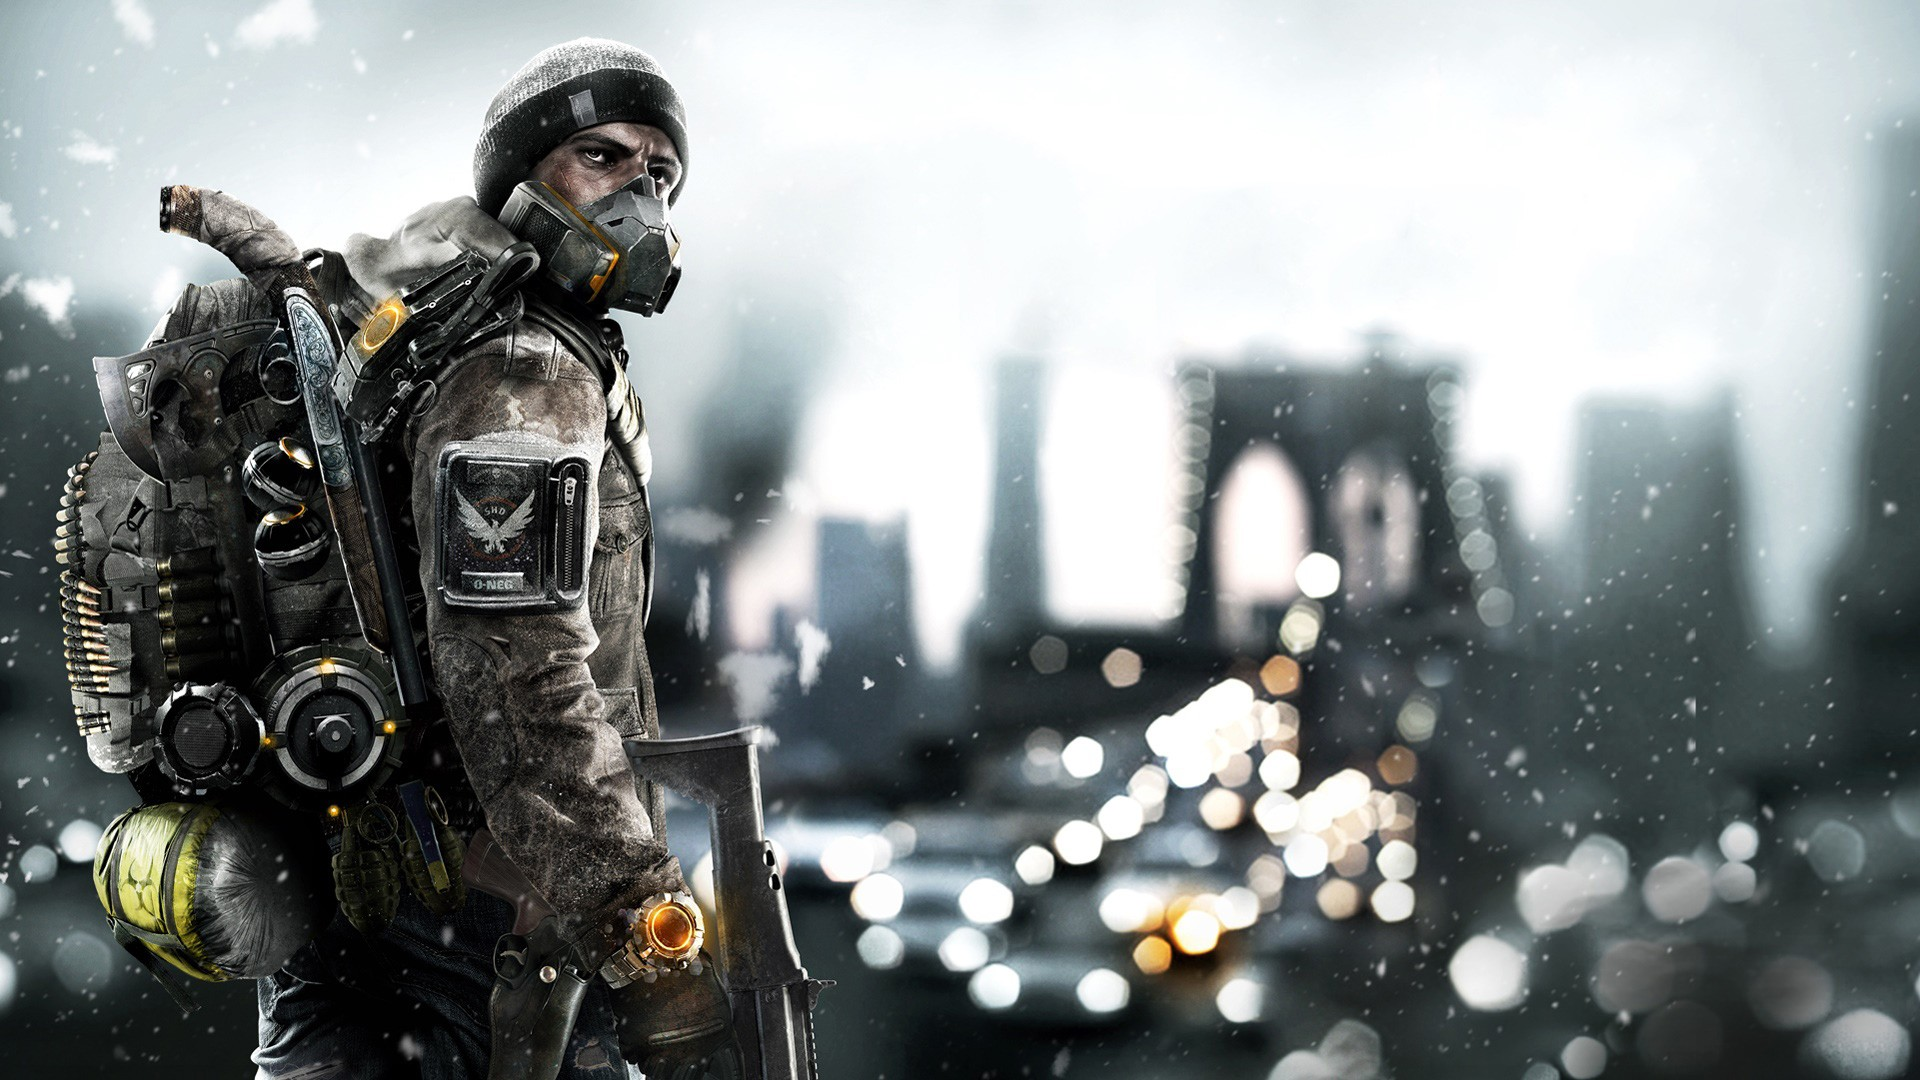 Mario Iphone Wallpaper Hd Tom Clancy S The Division Season Pass Wallpapers Hd